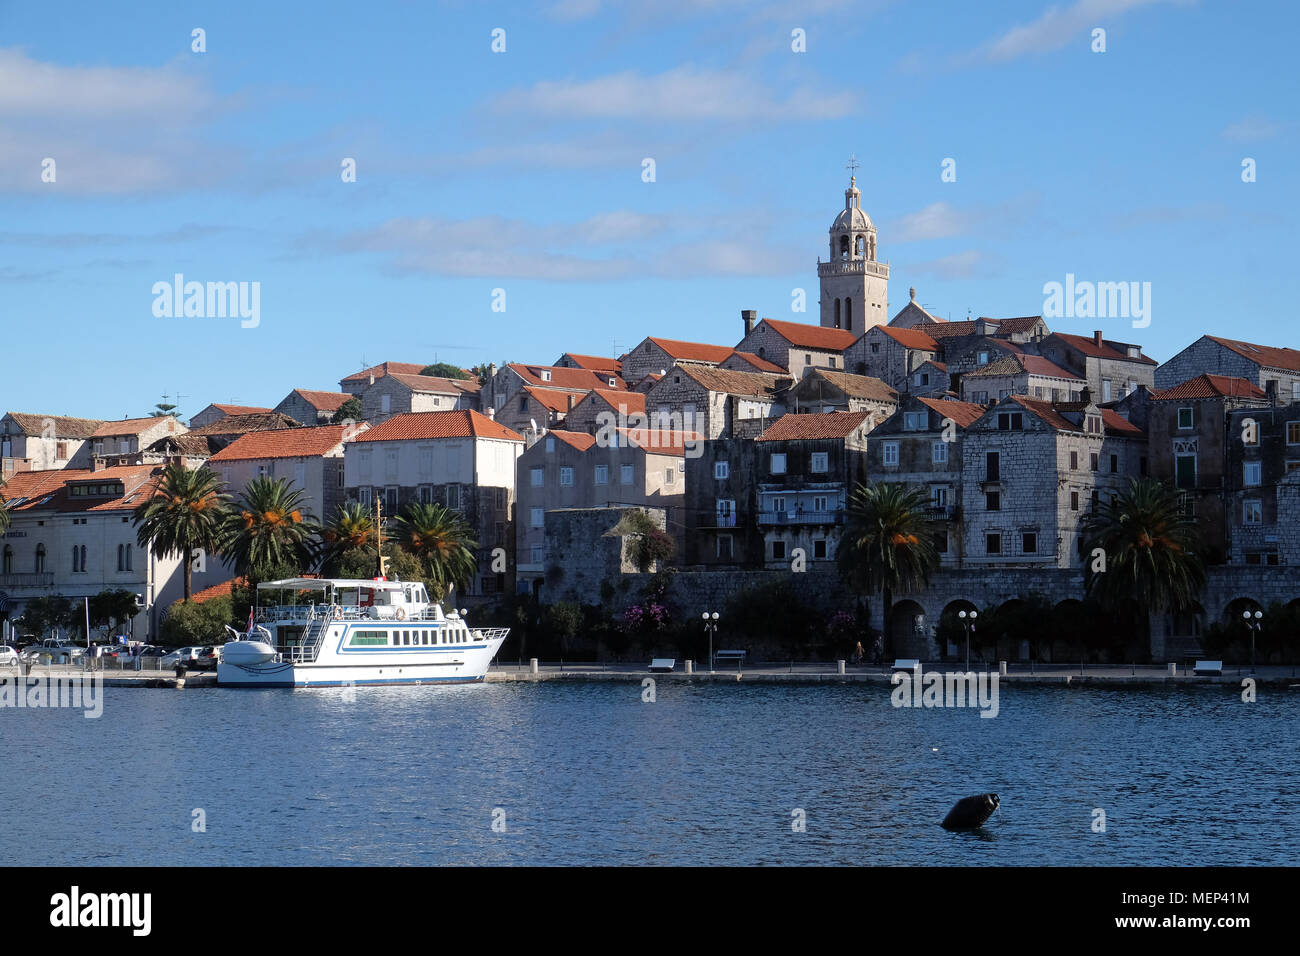 Seafront view at picturesque medieval Dalmatian town Korcula, Croatian culture and historic destination. Stock Photo